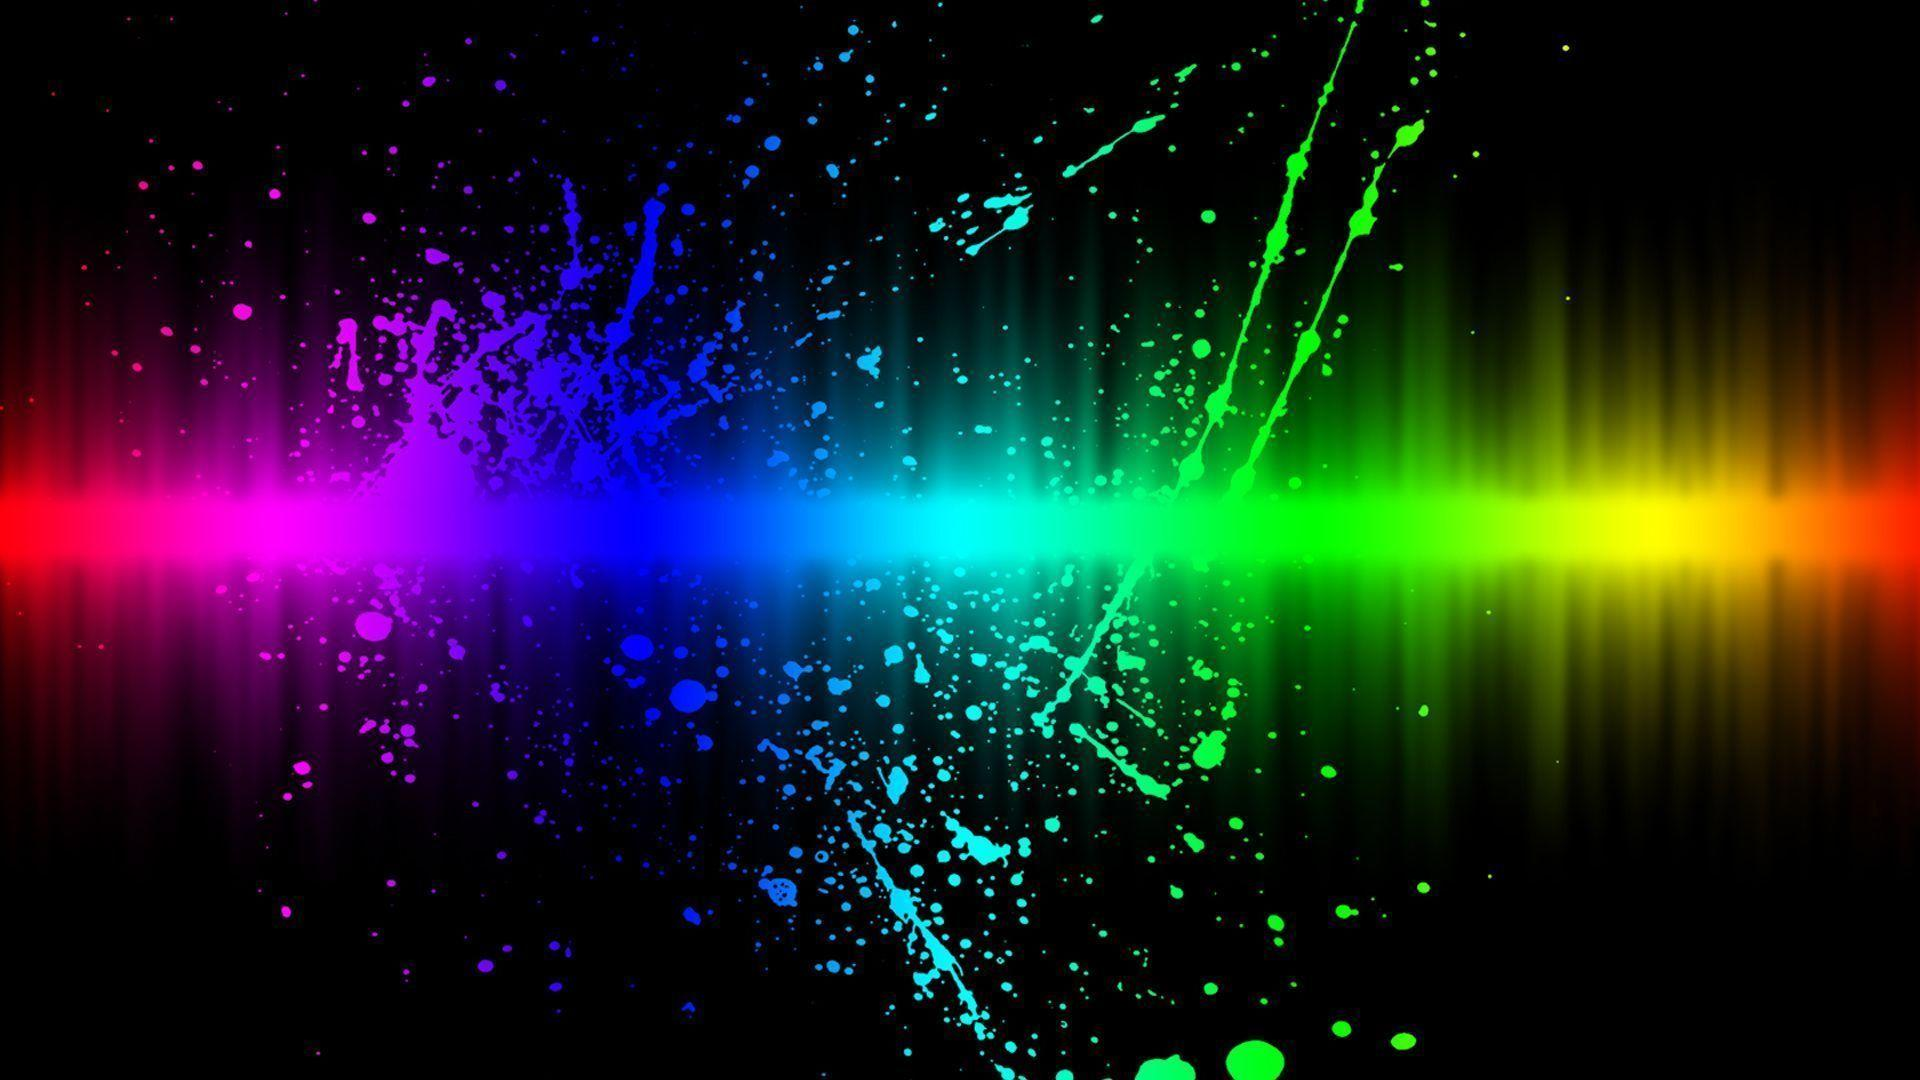 Colorful Backgrounds HD Desktop Background